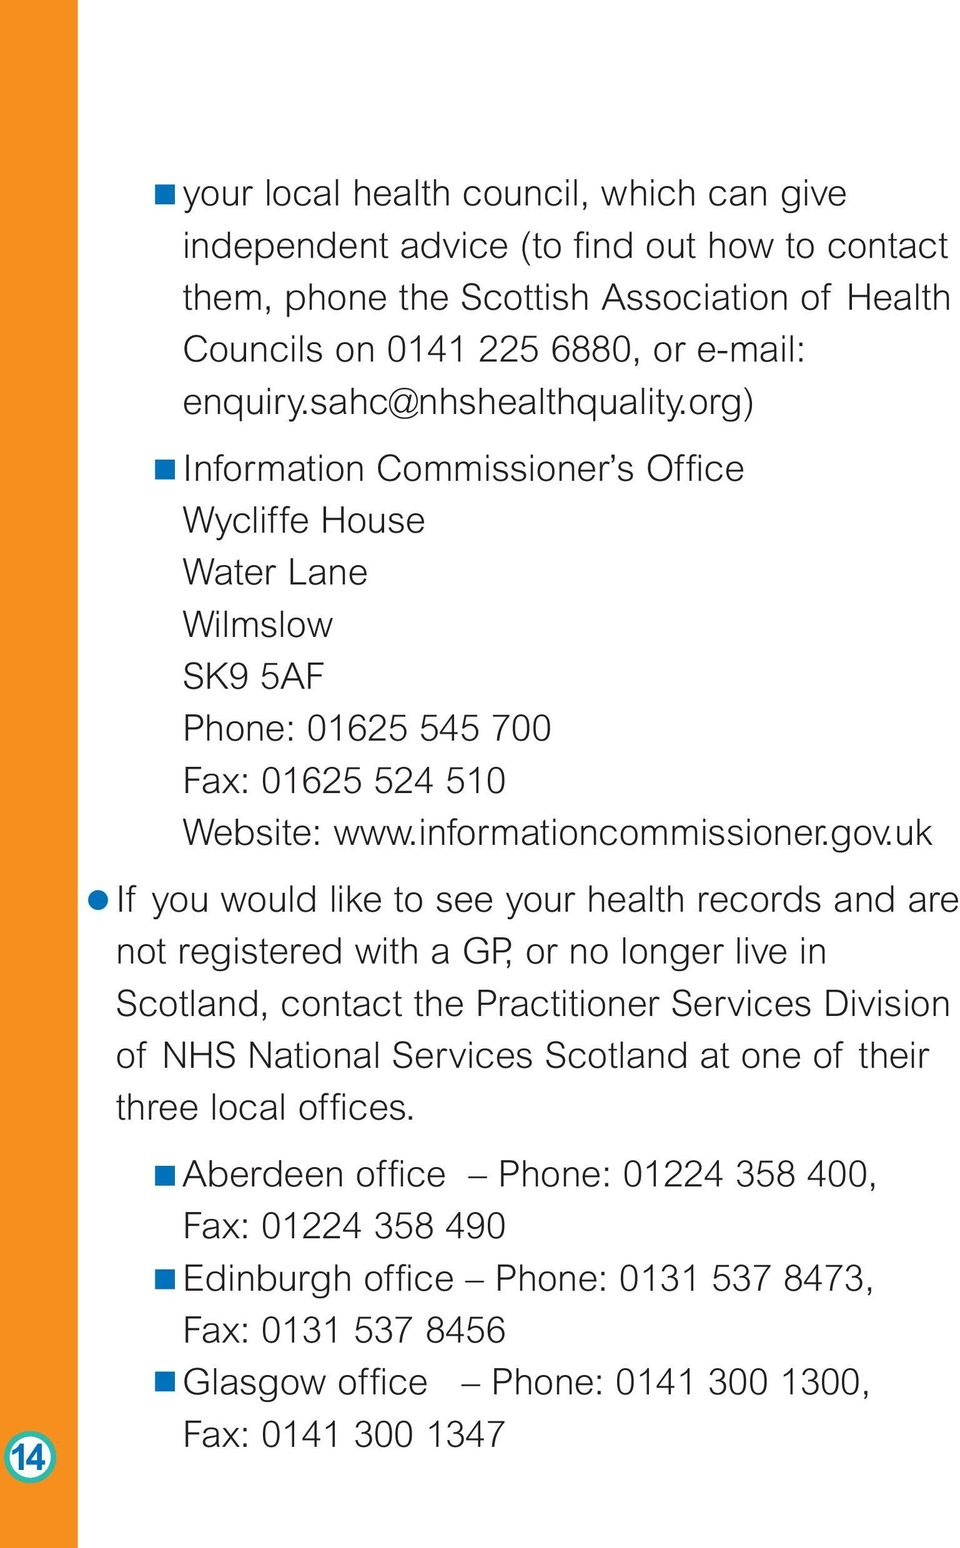 uk If you would like to see your health records and are not registered with a GP, or no longer live in Scotland, contact the Practitioner Services Division of NHS National Services Scotland